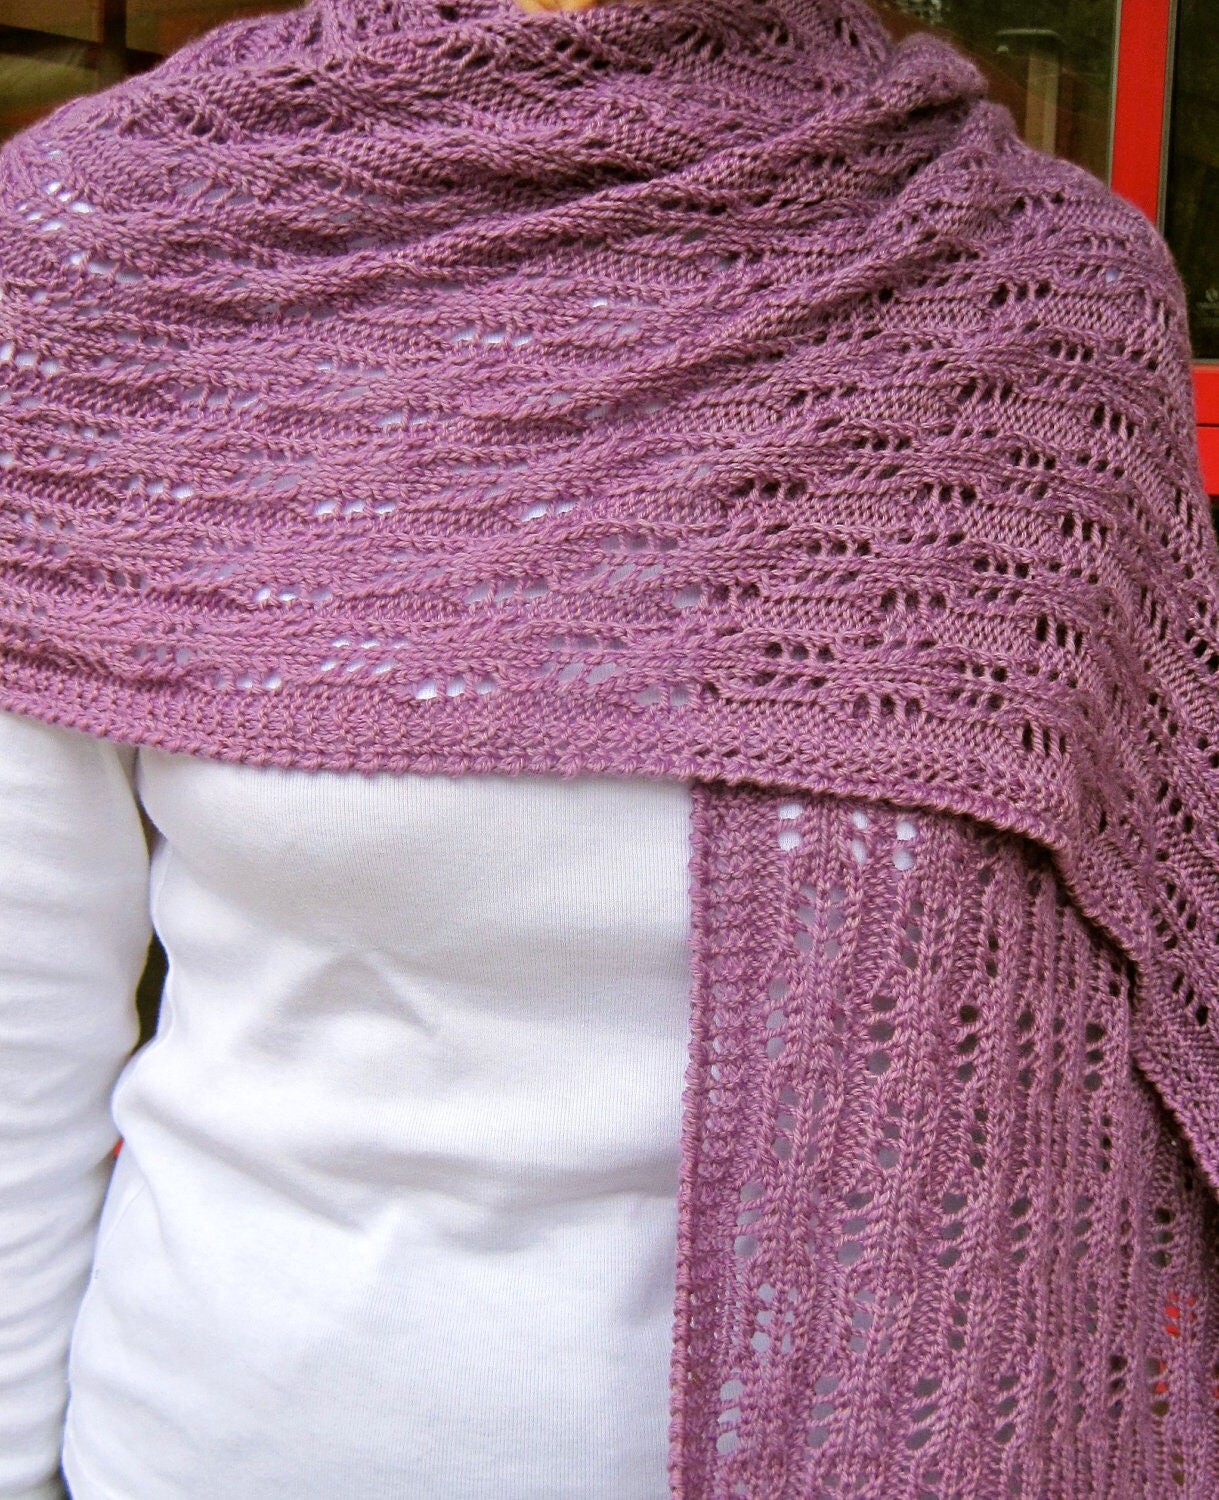 Simple Lace Shawl Knitting Pattern : Knit Wrap Pattern: Easy Eyelet Lace Shawl by WearableArtEmporium